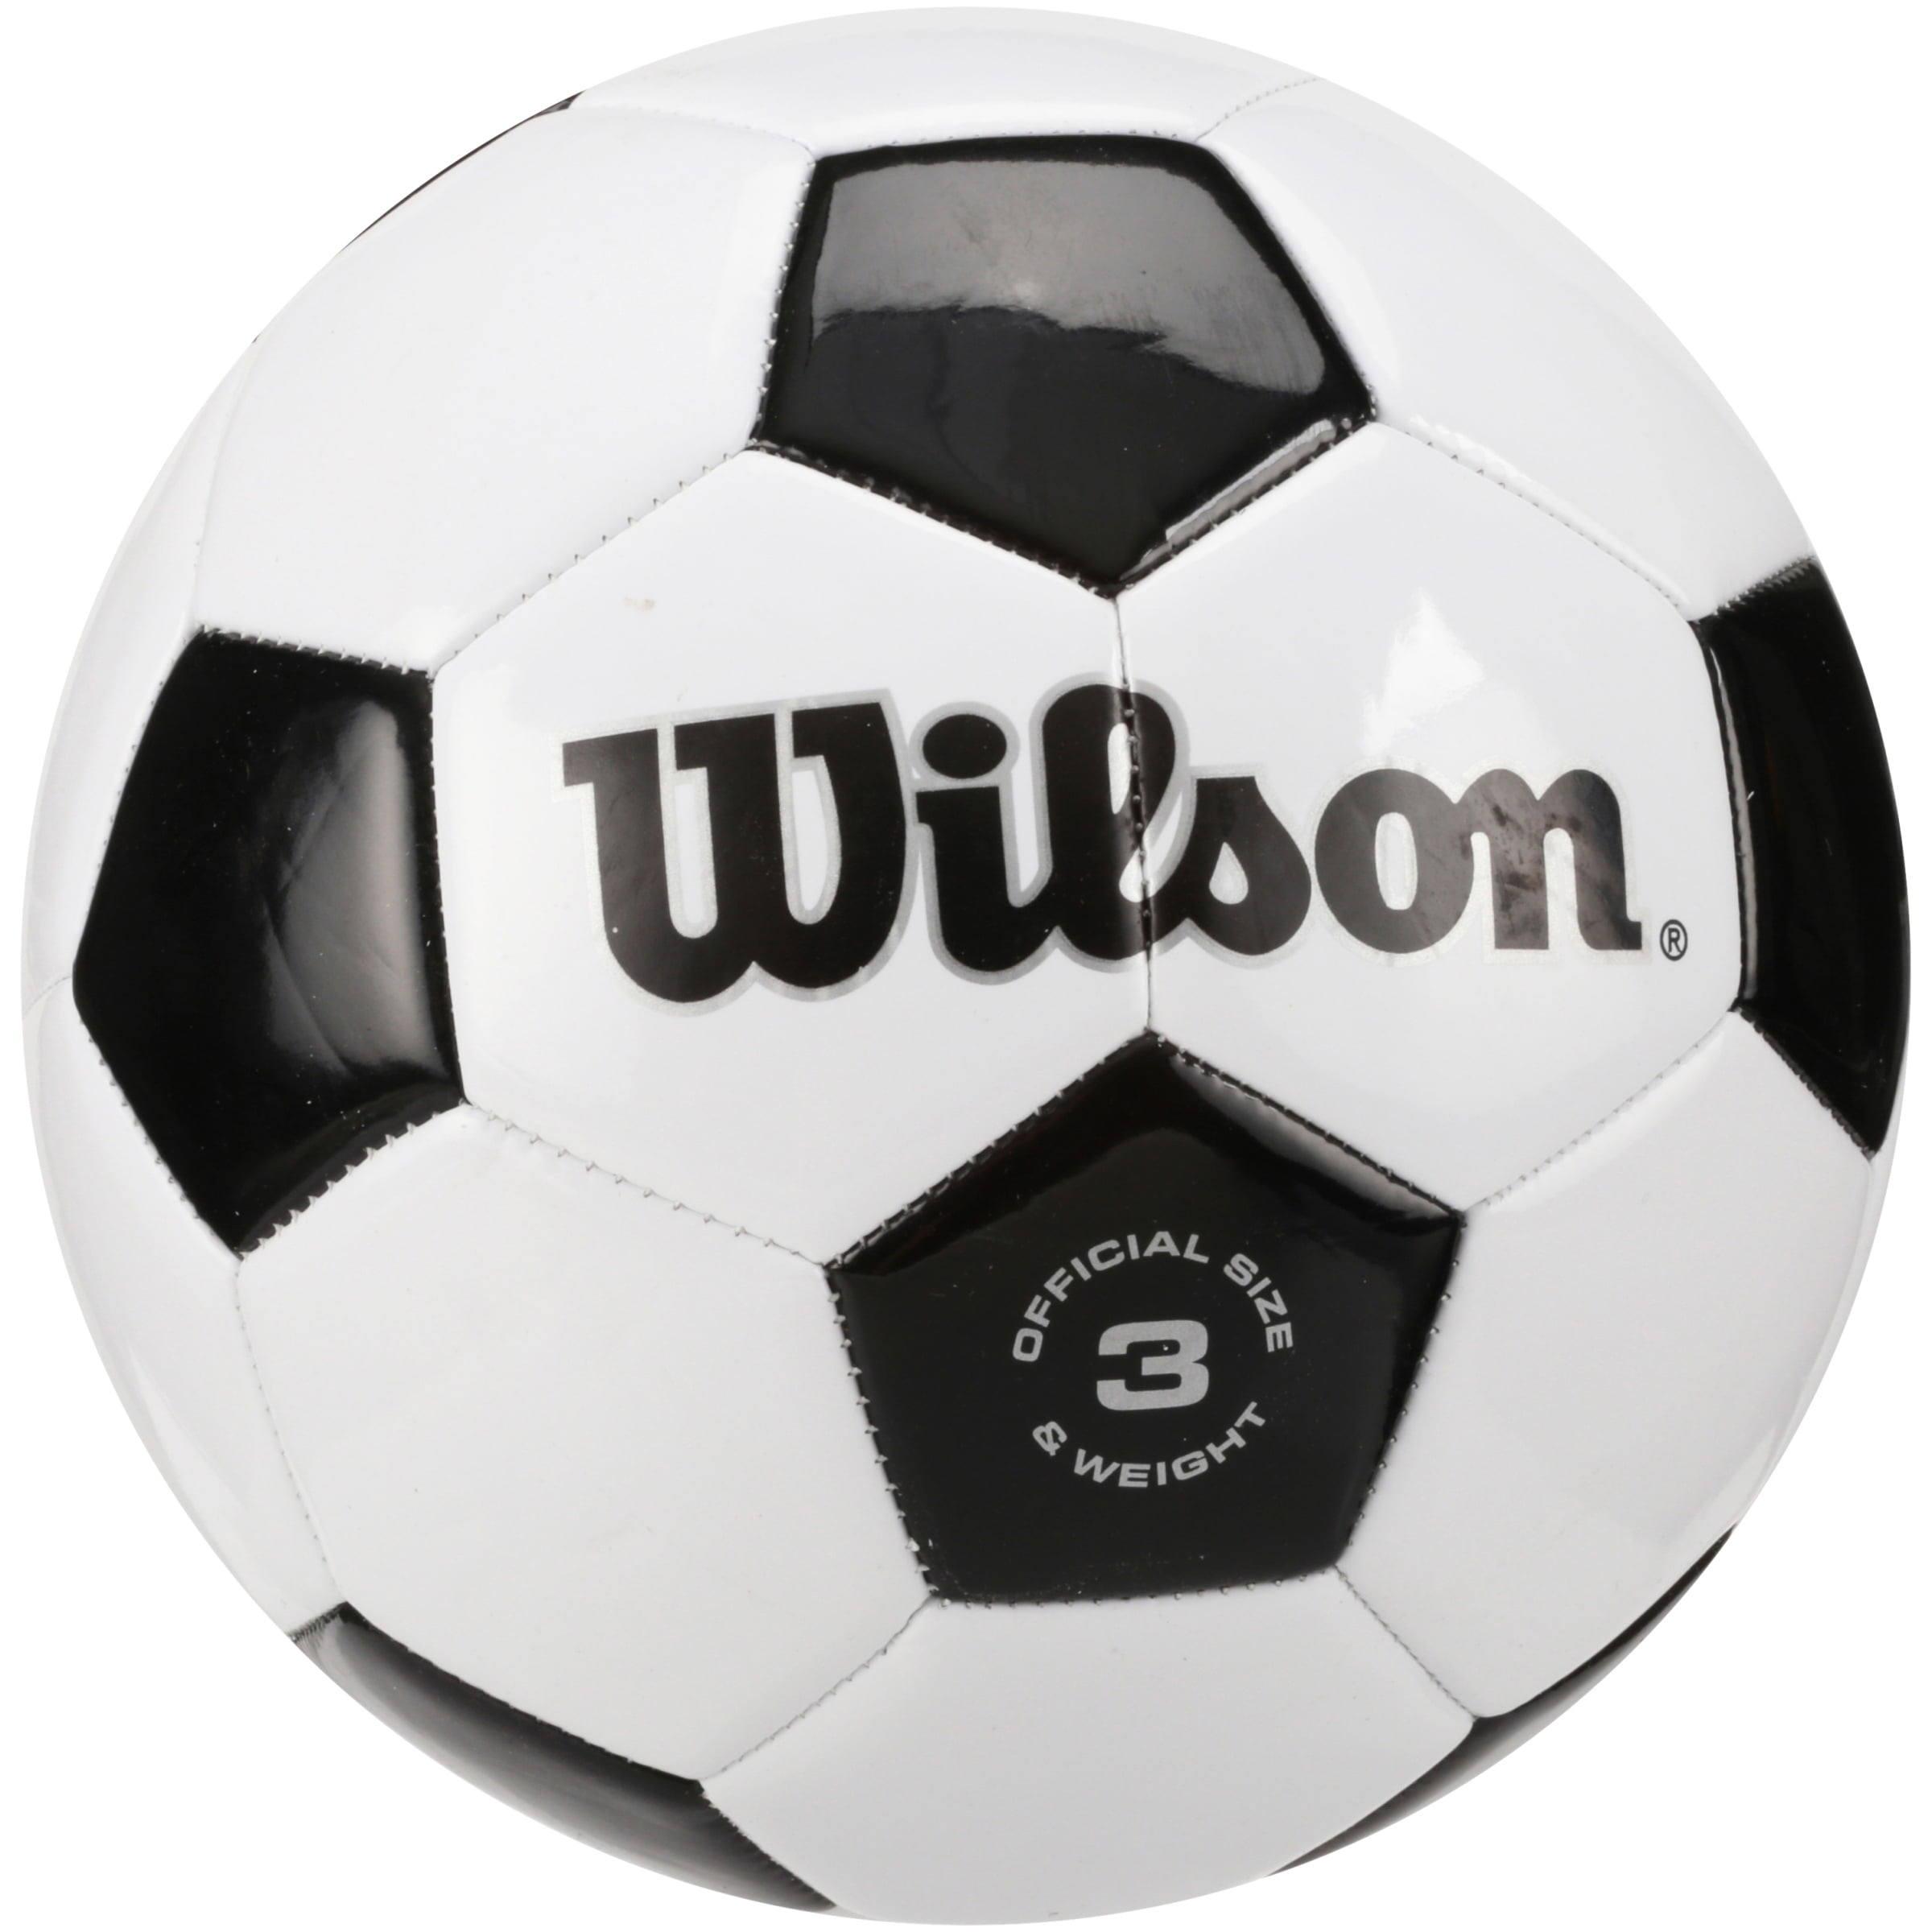 Wilson Traditional Black White Soccer Ball by Wilson Sporting Goods